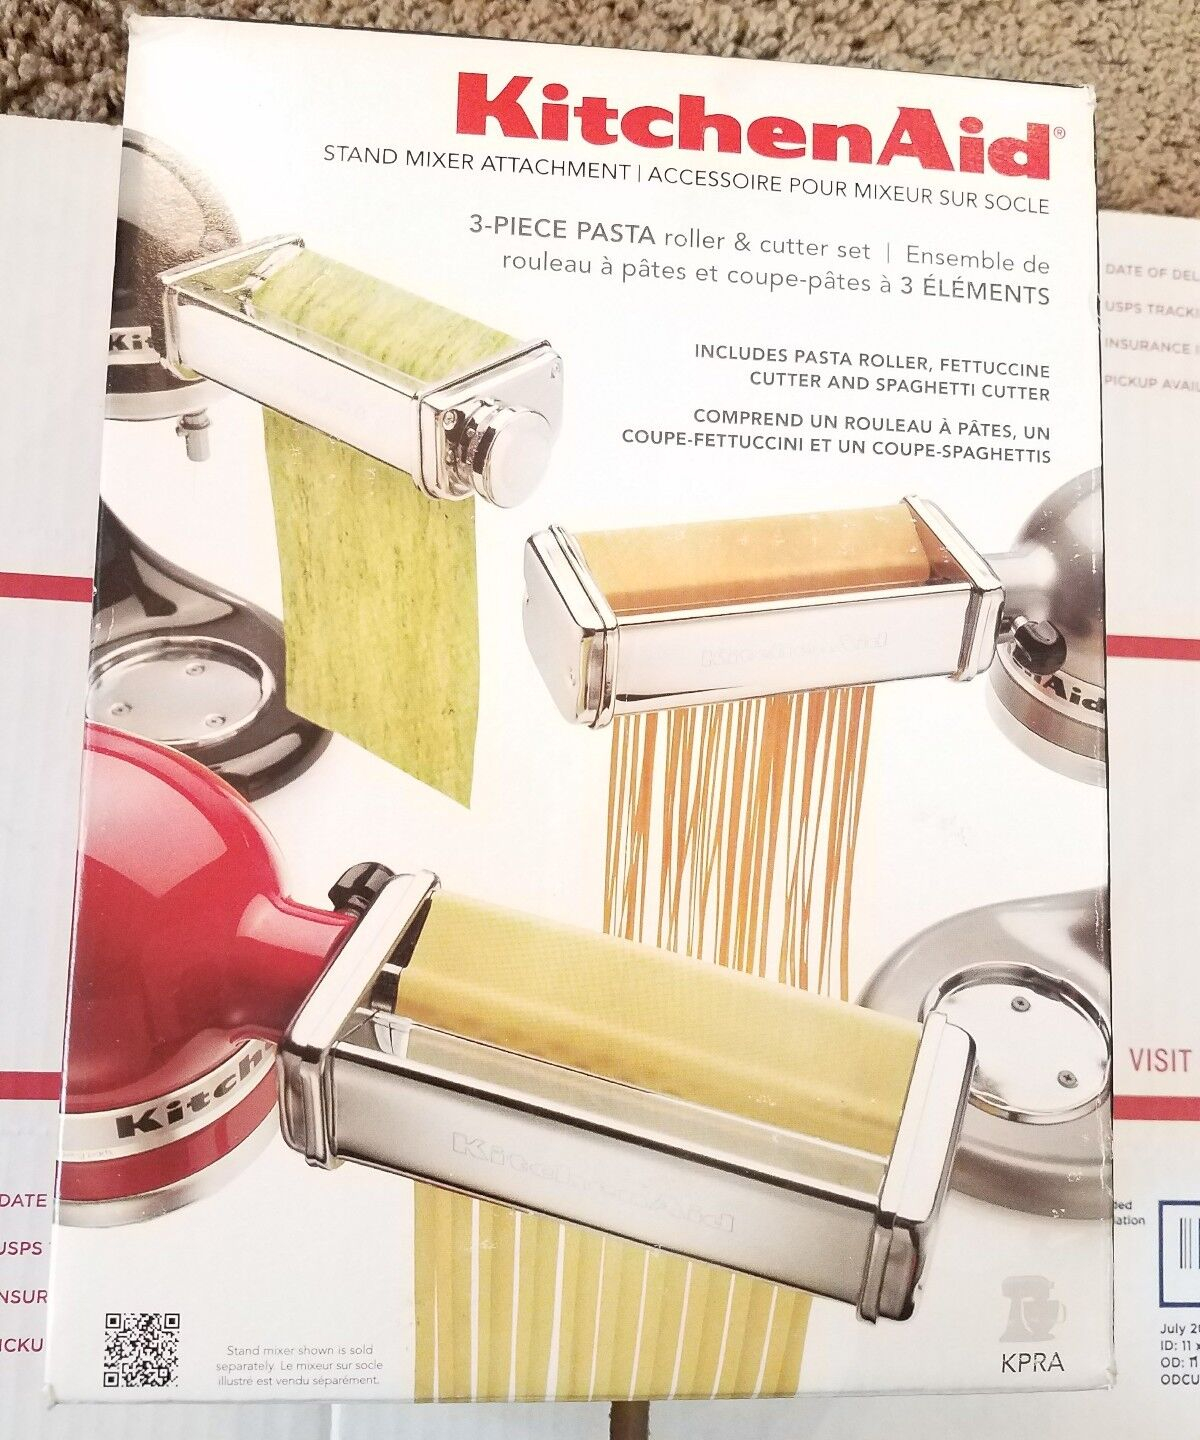 Kitchenaid KPRA Pasta Roller & Cutter Set- 3 Piece